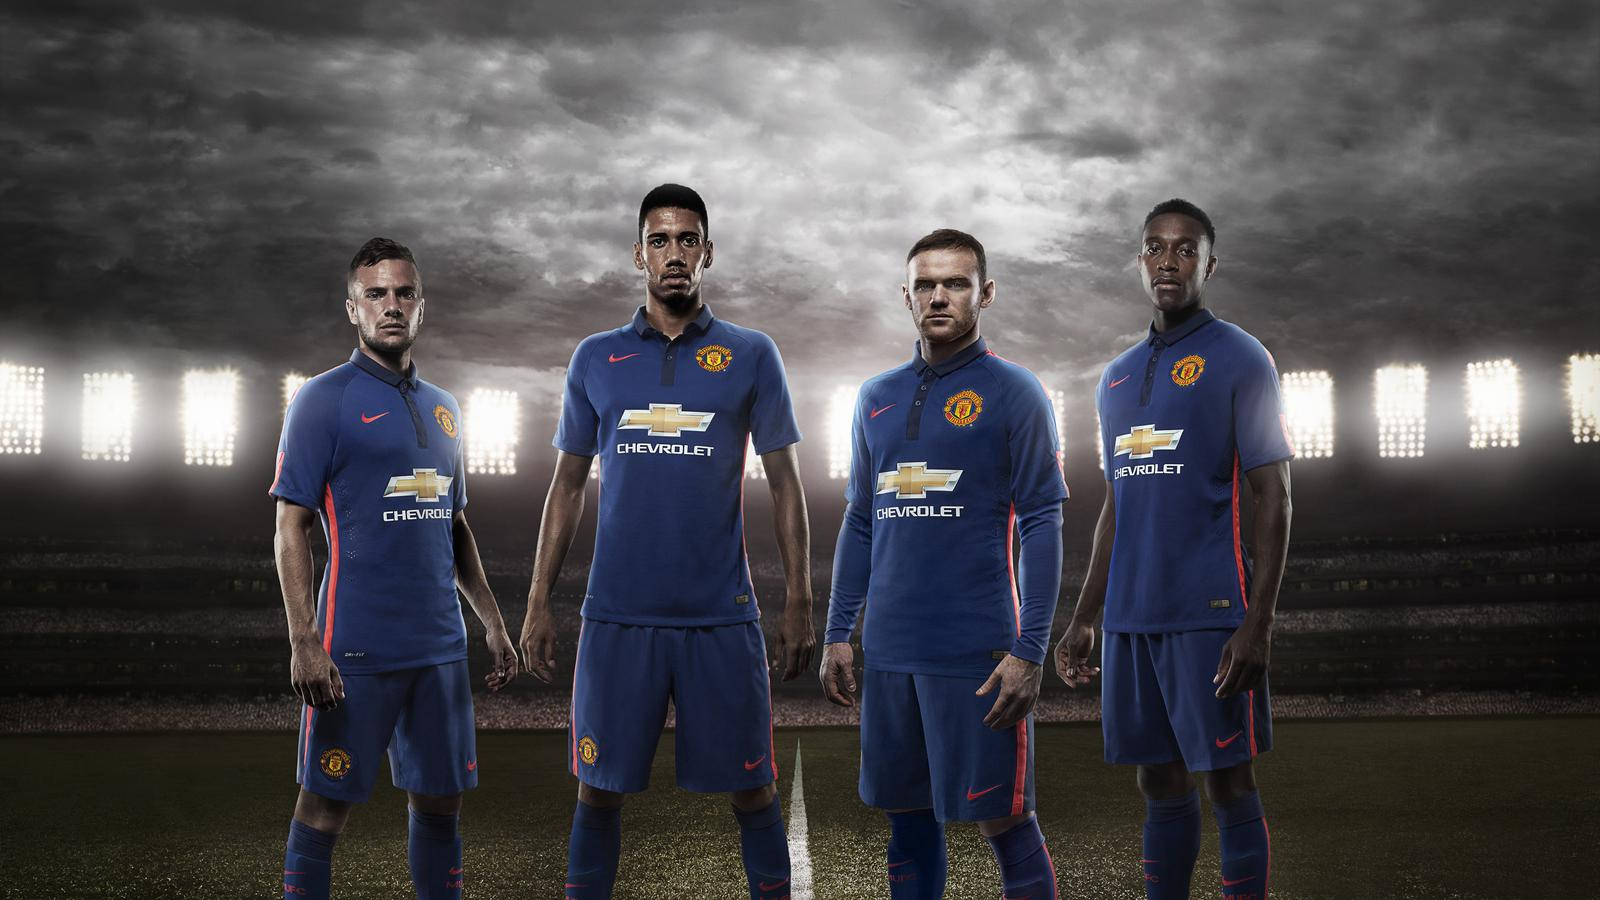 nike and manchester united unveil third kit nike news nike and manchester united unveil third